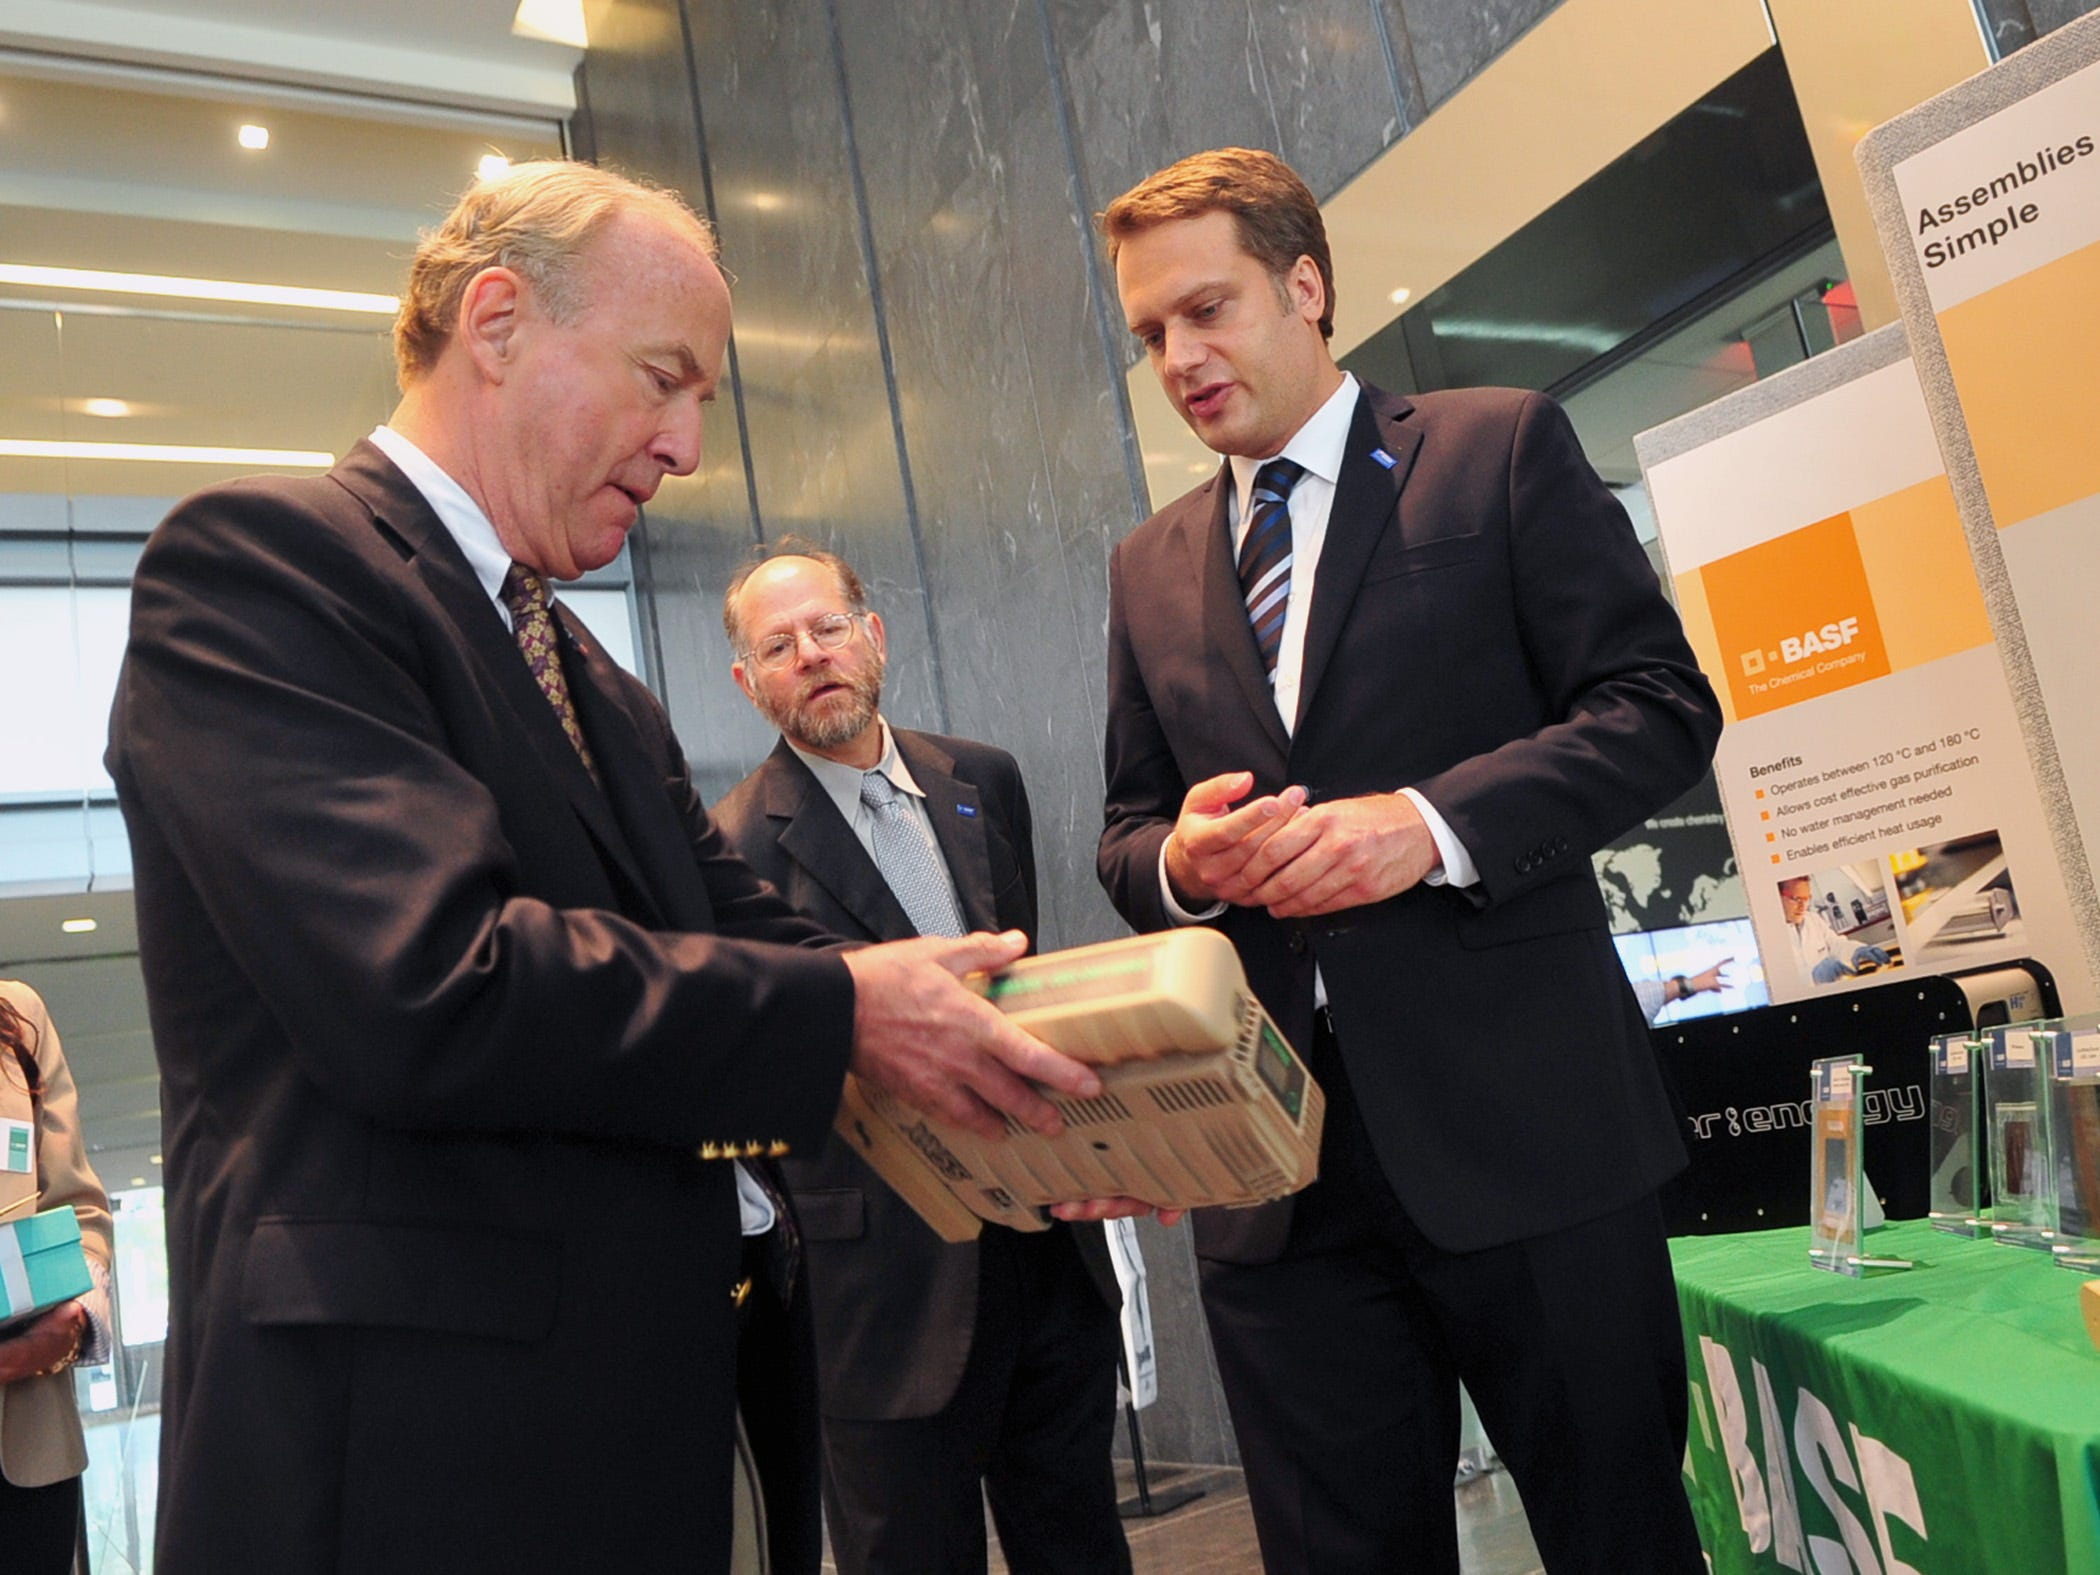 Rep. Rodney Frelinghuysen (left) looks over a portable fuel cell system used by the military with Moritz Ehrenstein (right), CEO of BASF, as Emory S. DeCastro, a BASF scientist and vice president of business management, looks on at BASF headquarters.  KAREN MANCINELLI/SPECIAL TO THE DAILY RECORD